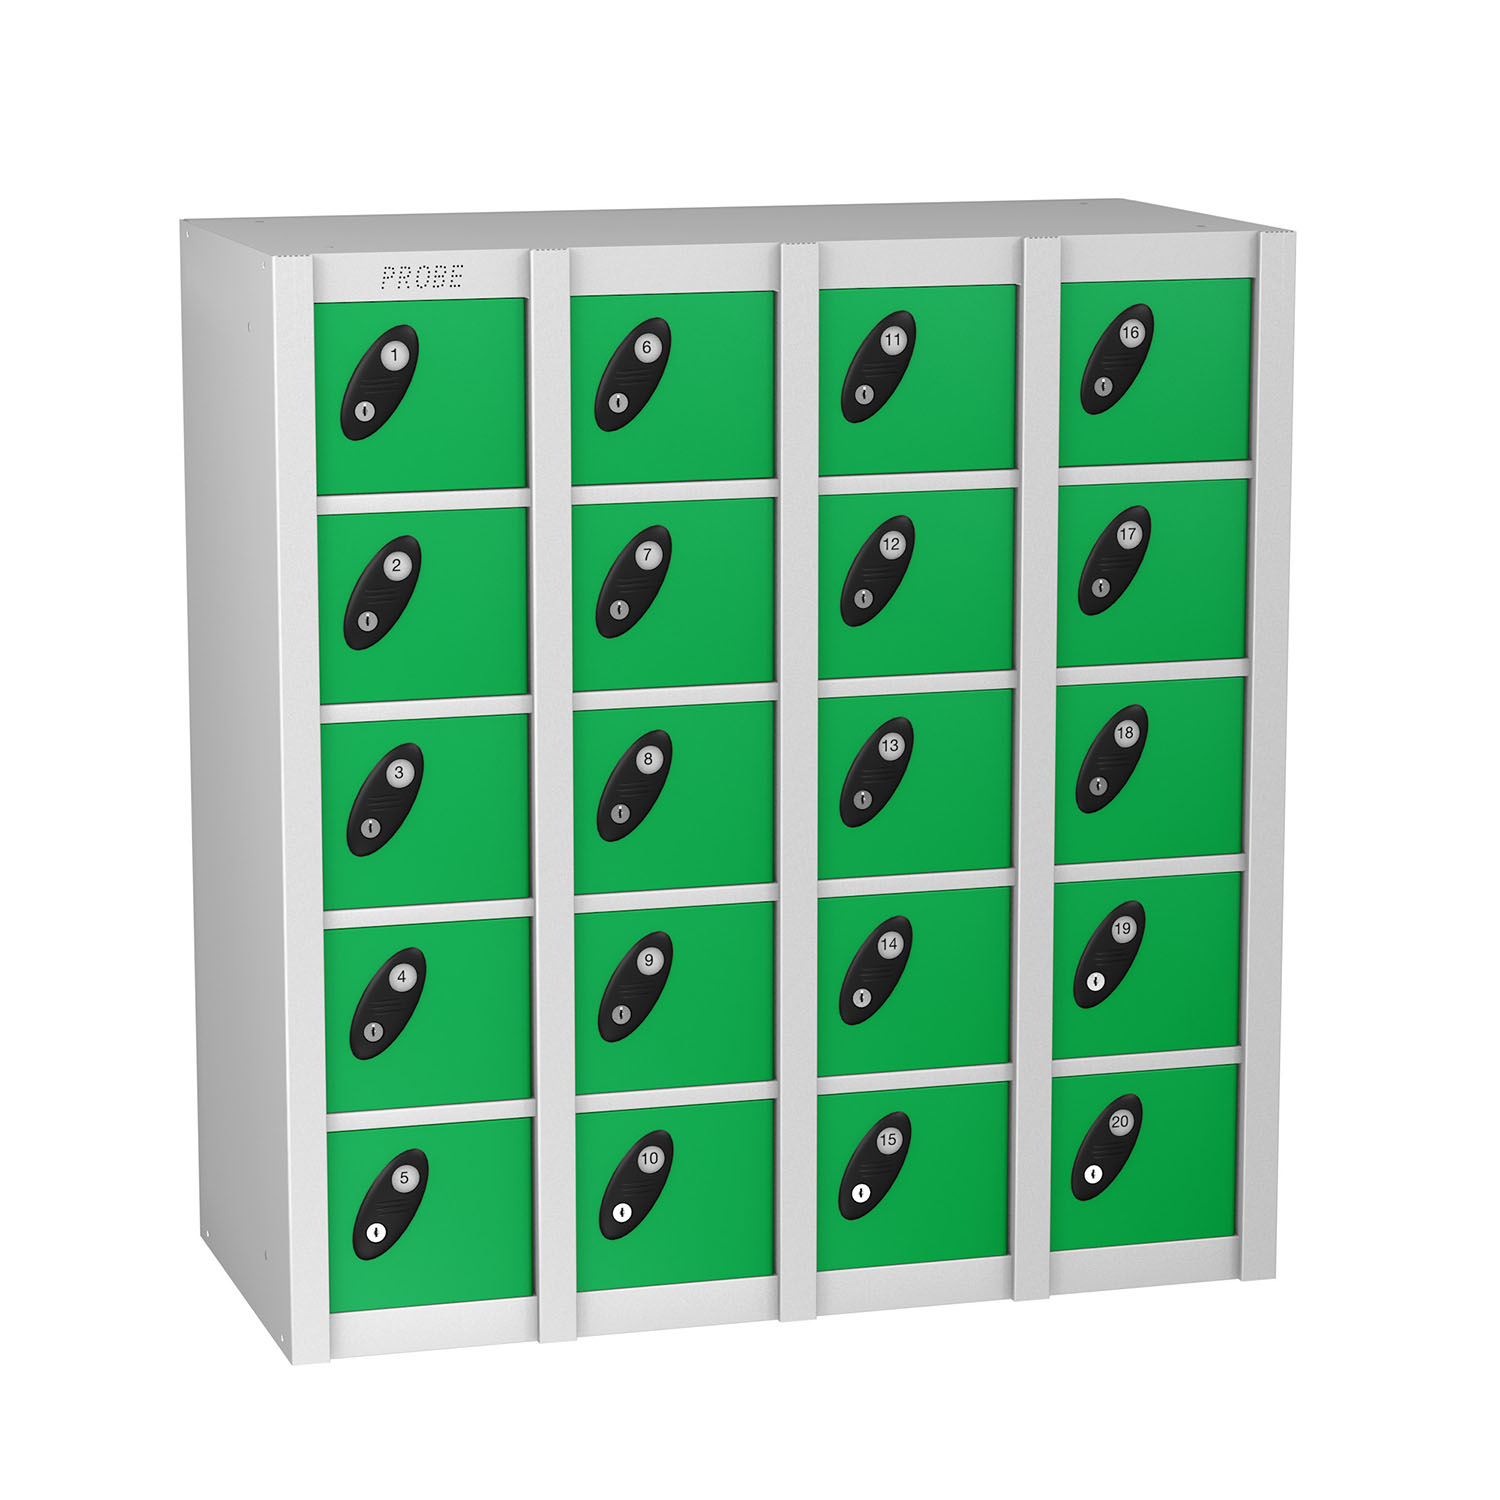 Probe 20 doors minibox lockers in green colour